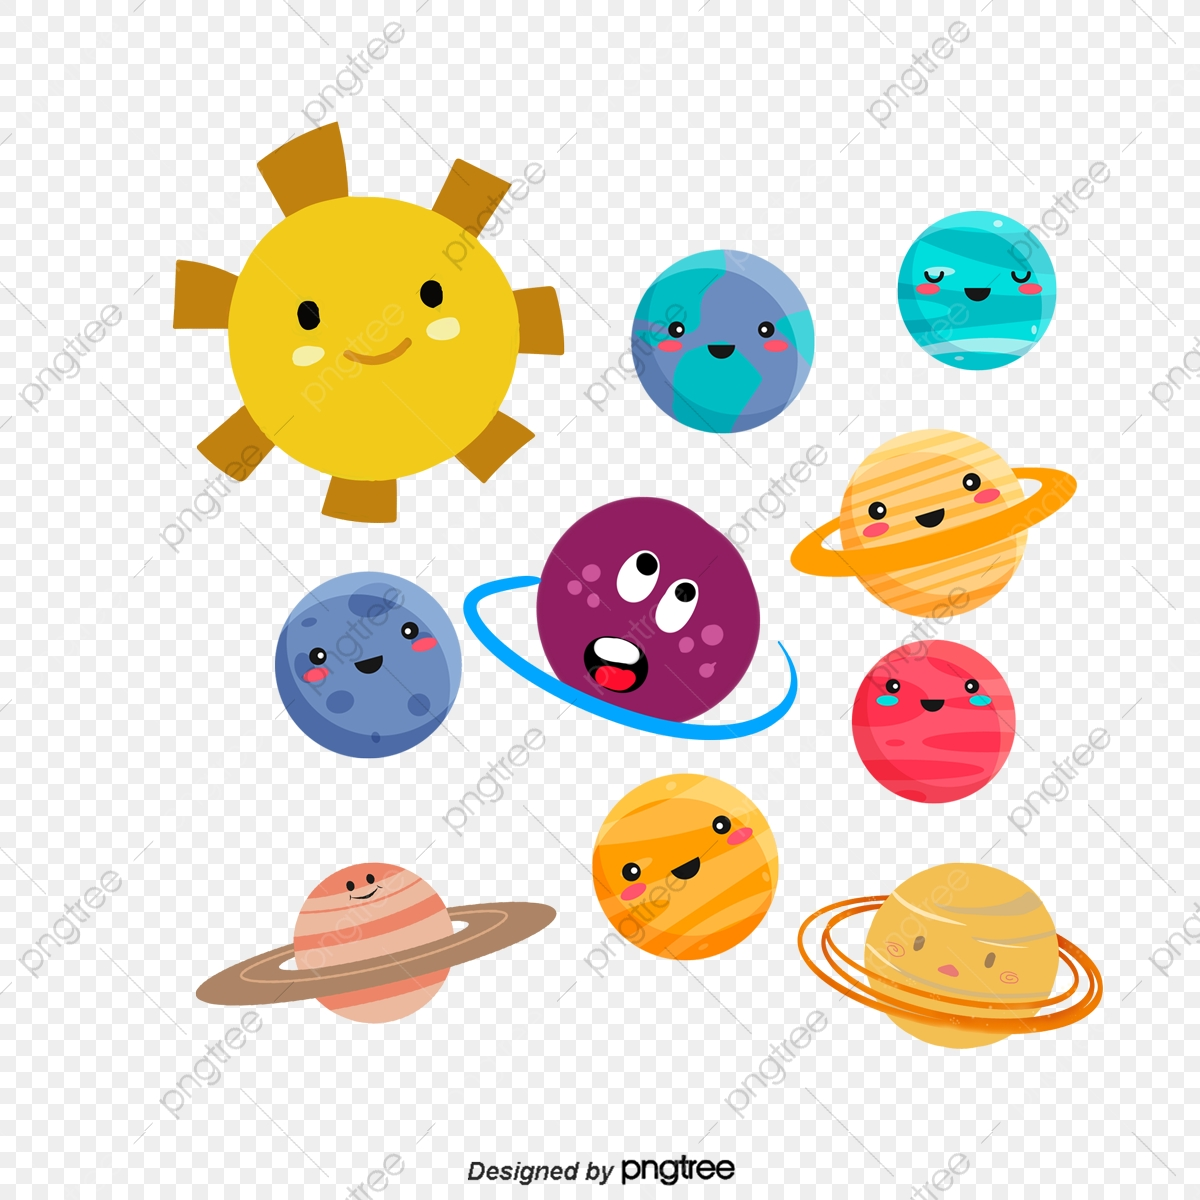 Cartoon Sun Face, Cartoon Clipart, Sun Clipart, Face Clipart PNG  Transparent Clipart Image and PSD File for Free Download